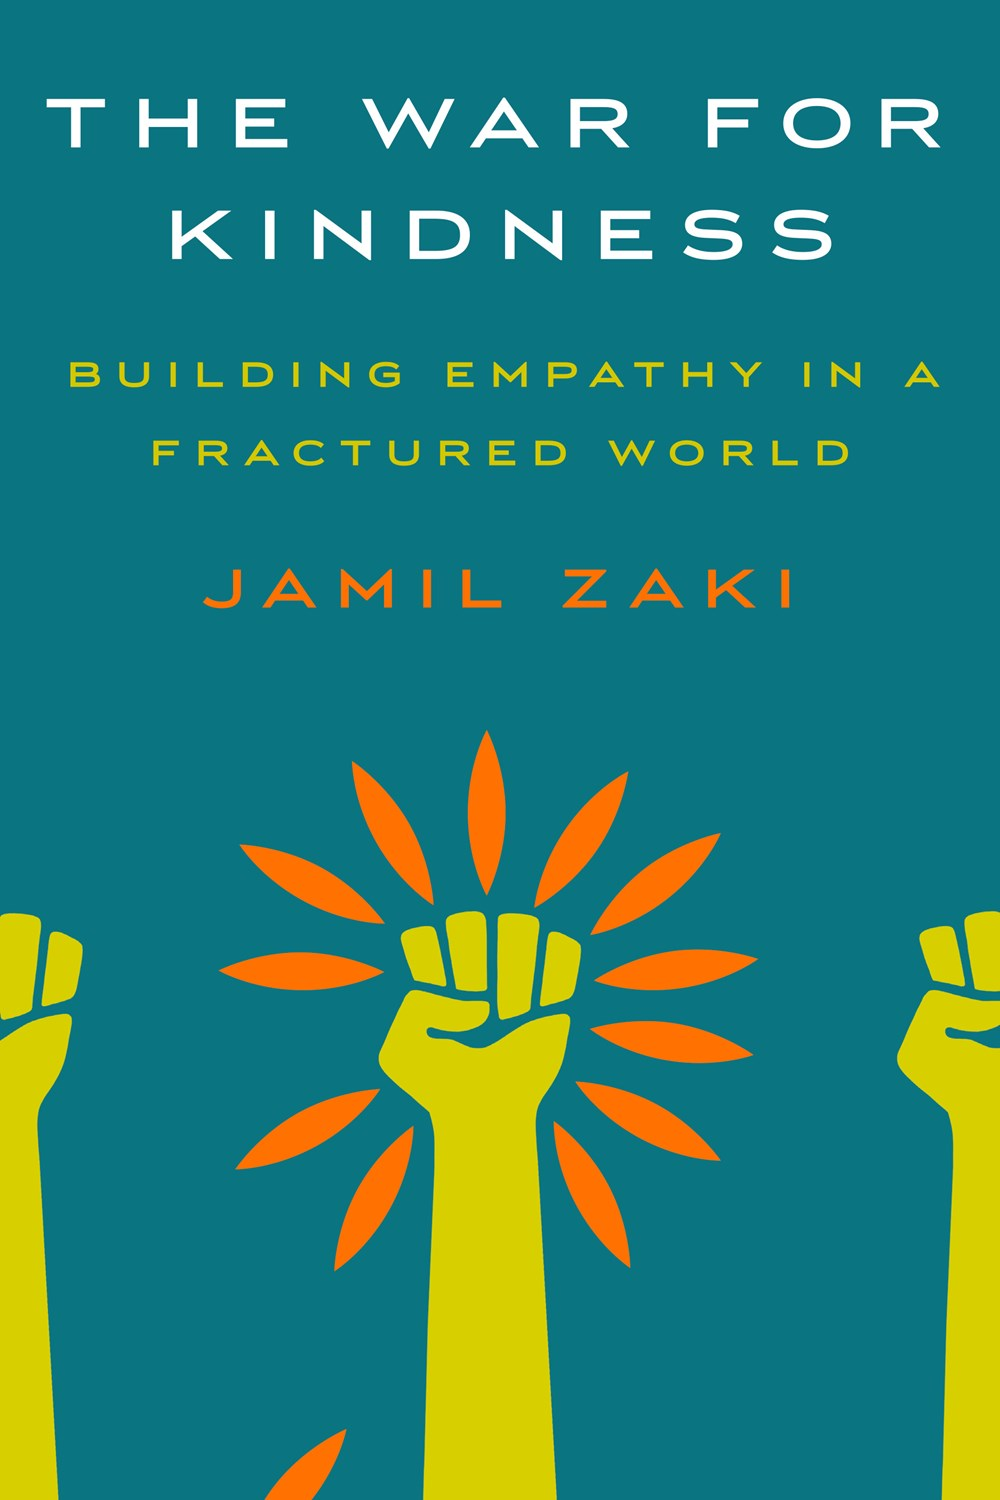 War for Kindness Building Empathy in a Fractured World